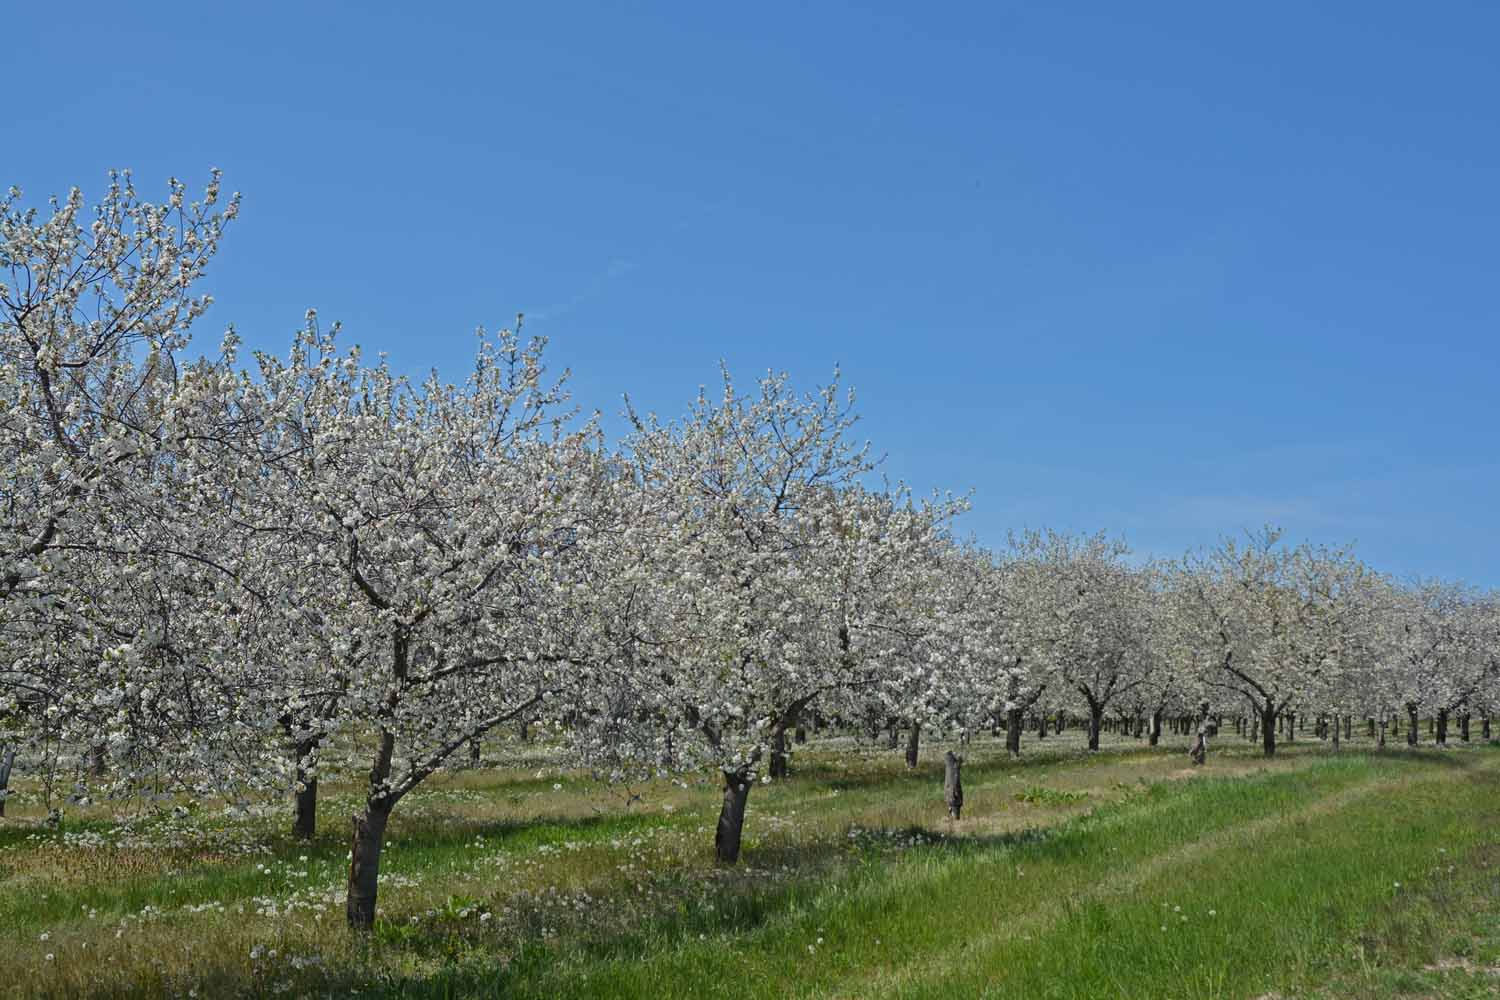 These are Apple Trees